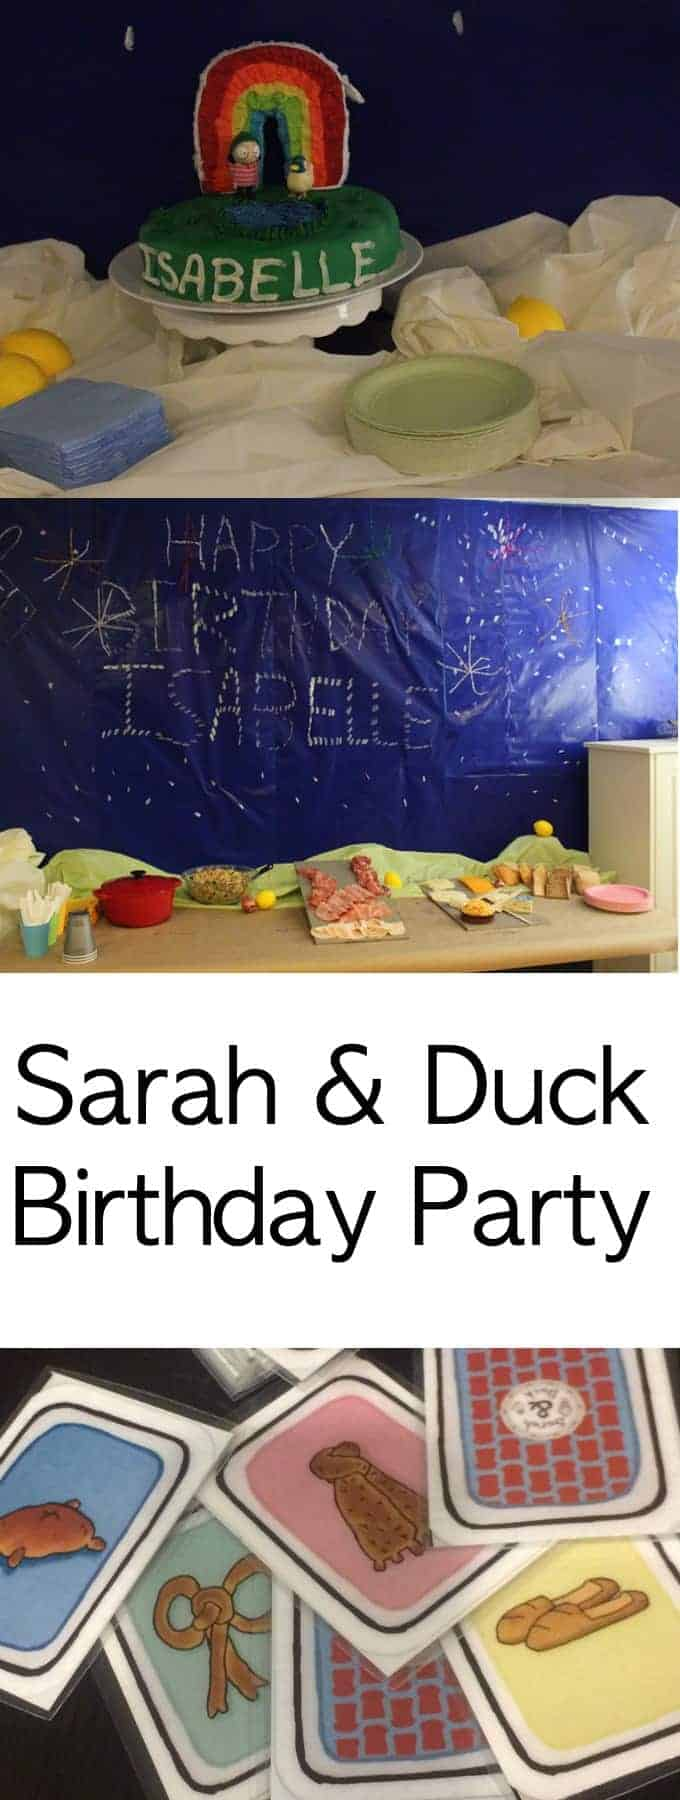 A Sarah & Duck Birthday Party complete with the Same Bread Card Game, Lemon Water, Shallots, Moon, Lemon Poppyseed Cake, Fireworks, and the Dozing Donkey